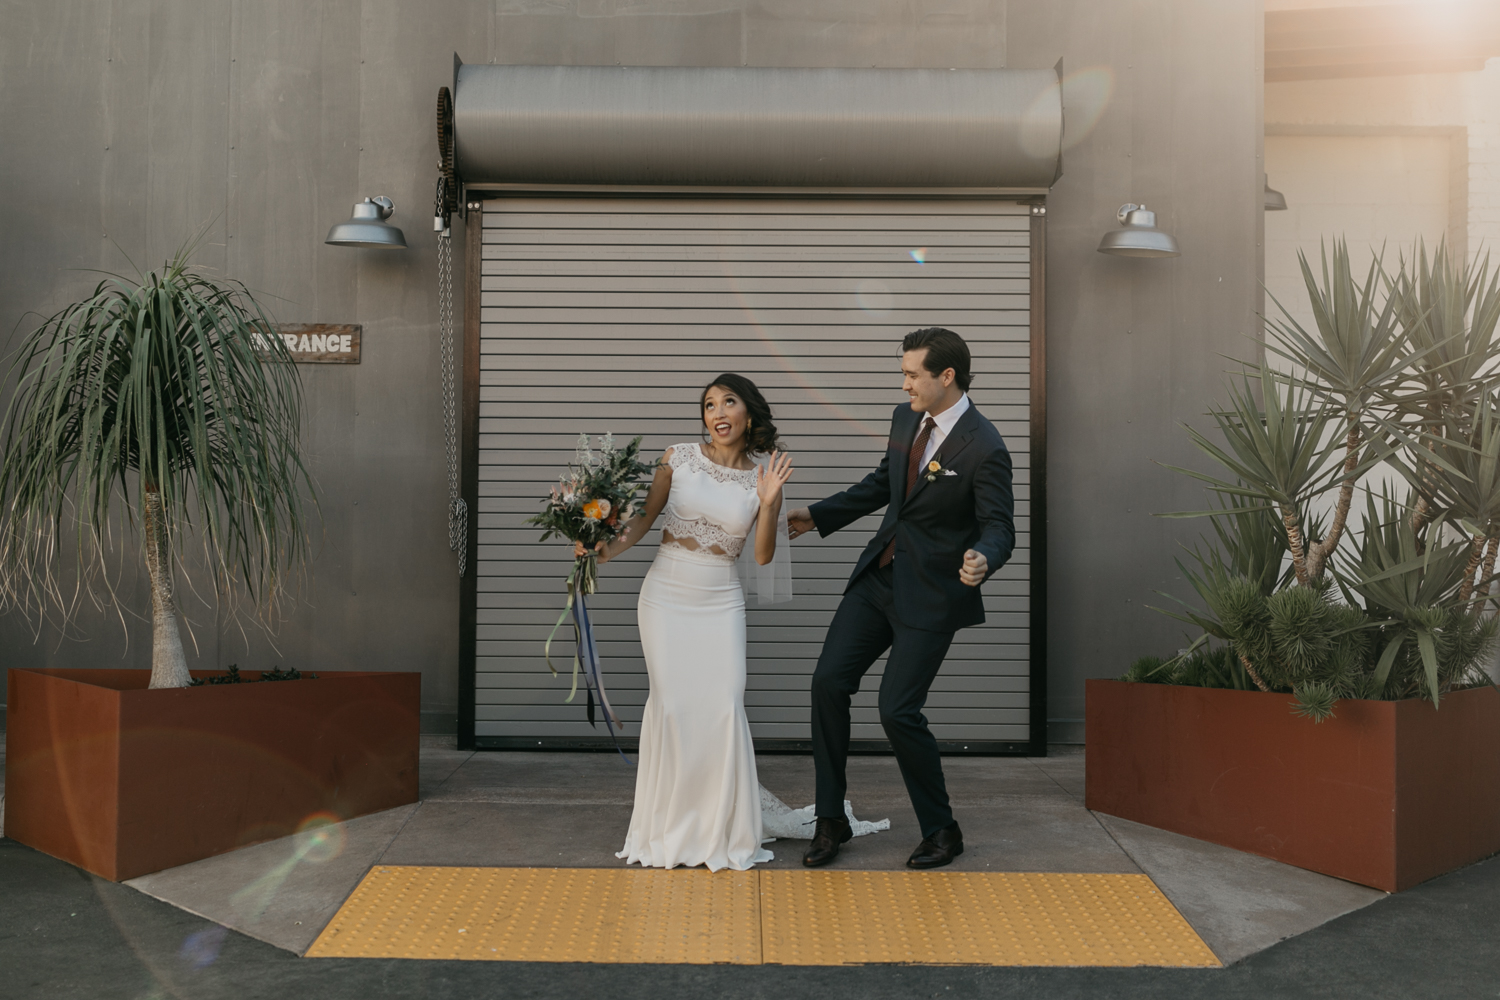 Rachel Gulotta Photography DTLA Millwick Wedding Photographers-26.jpg